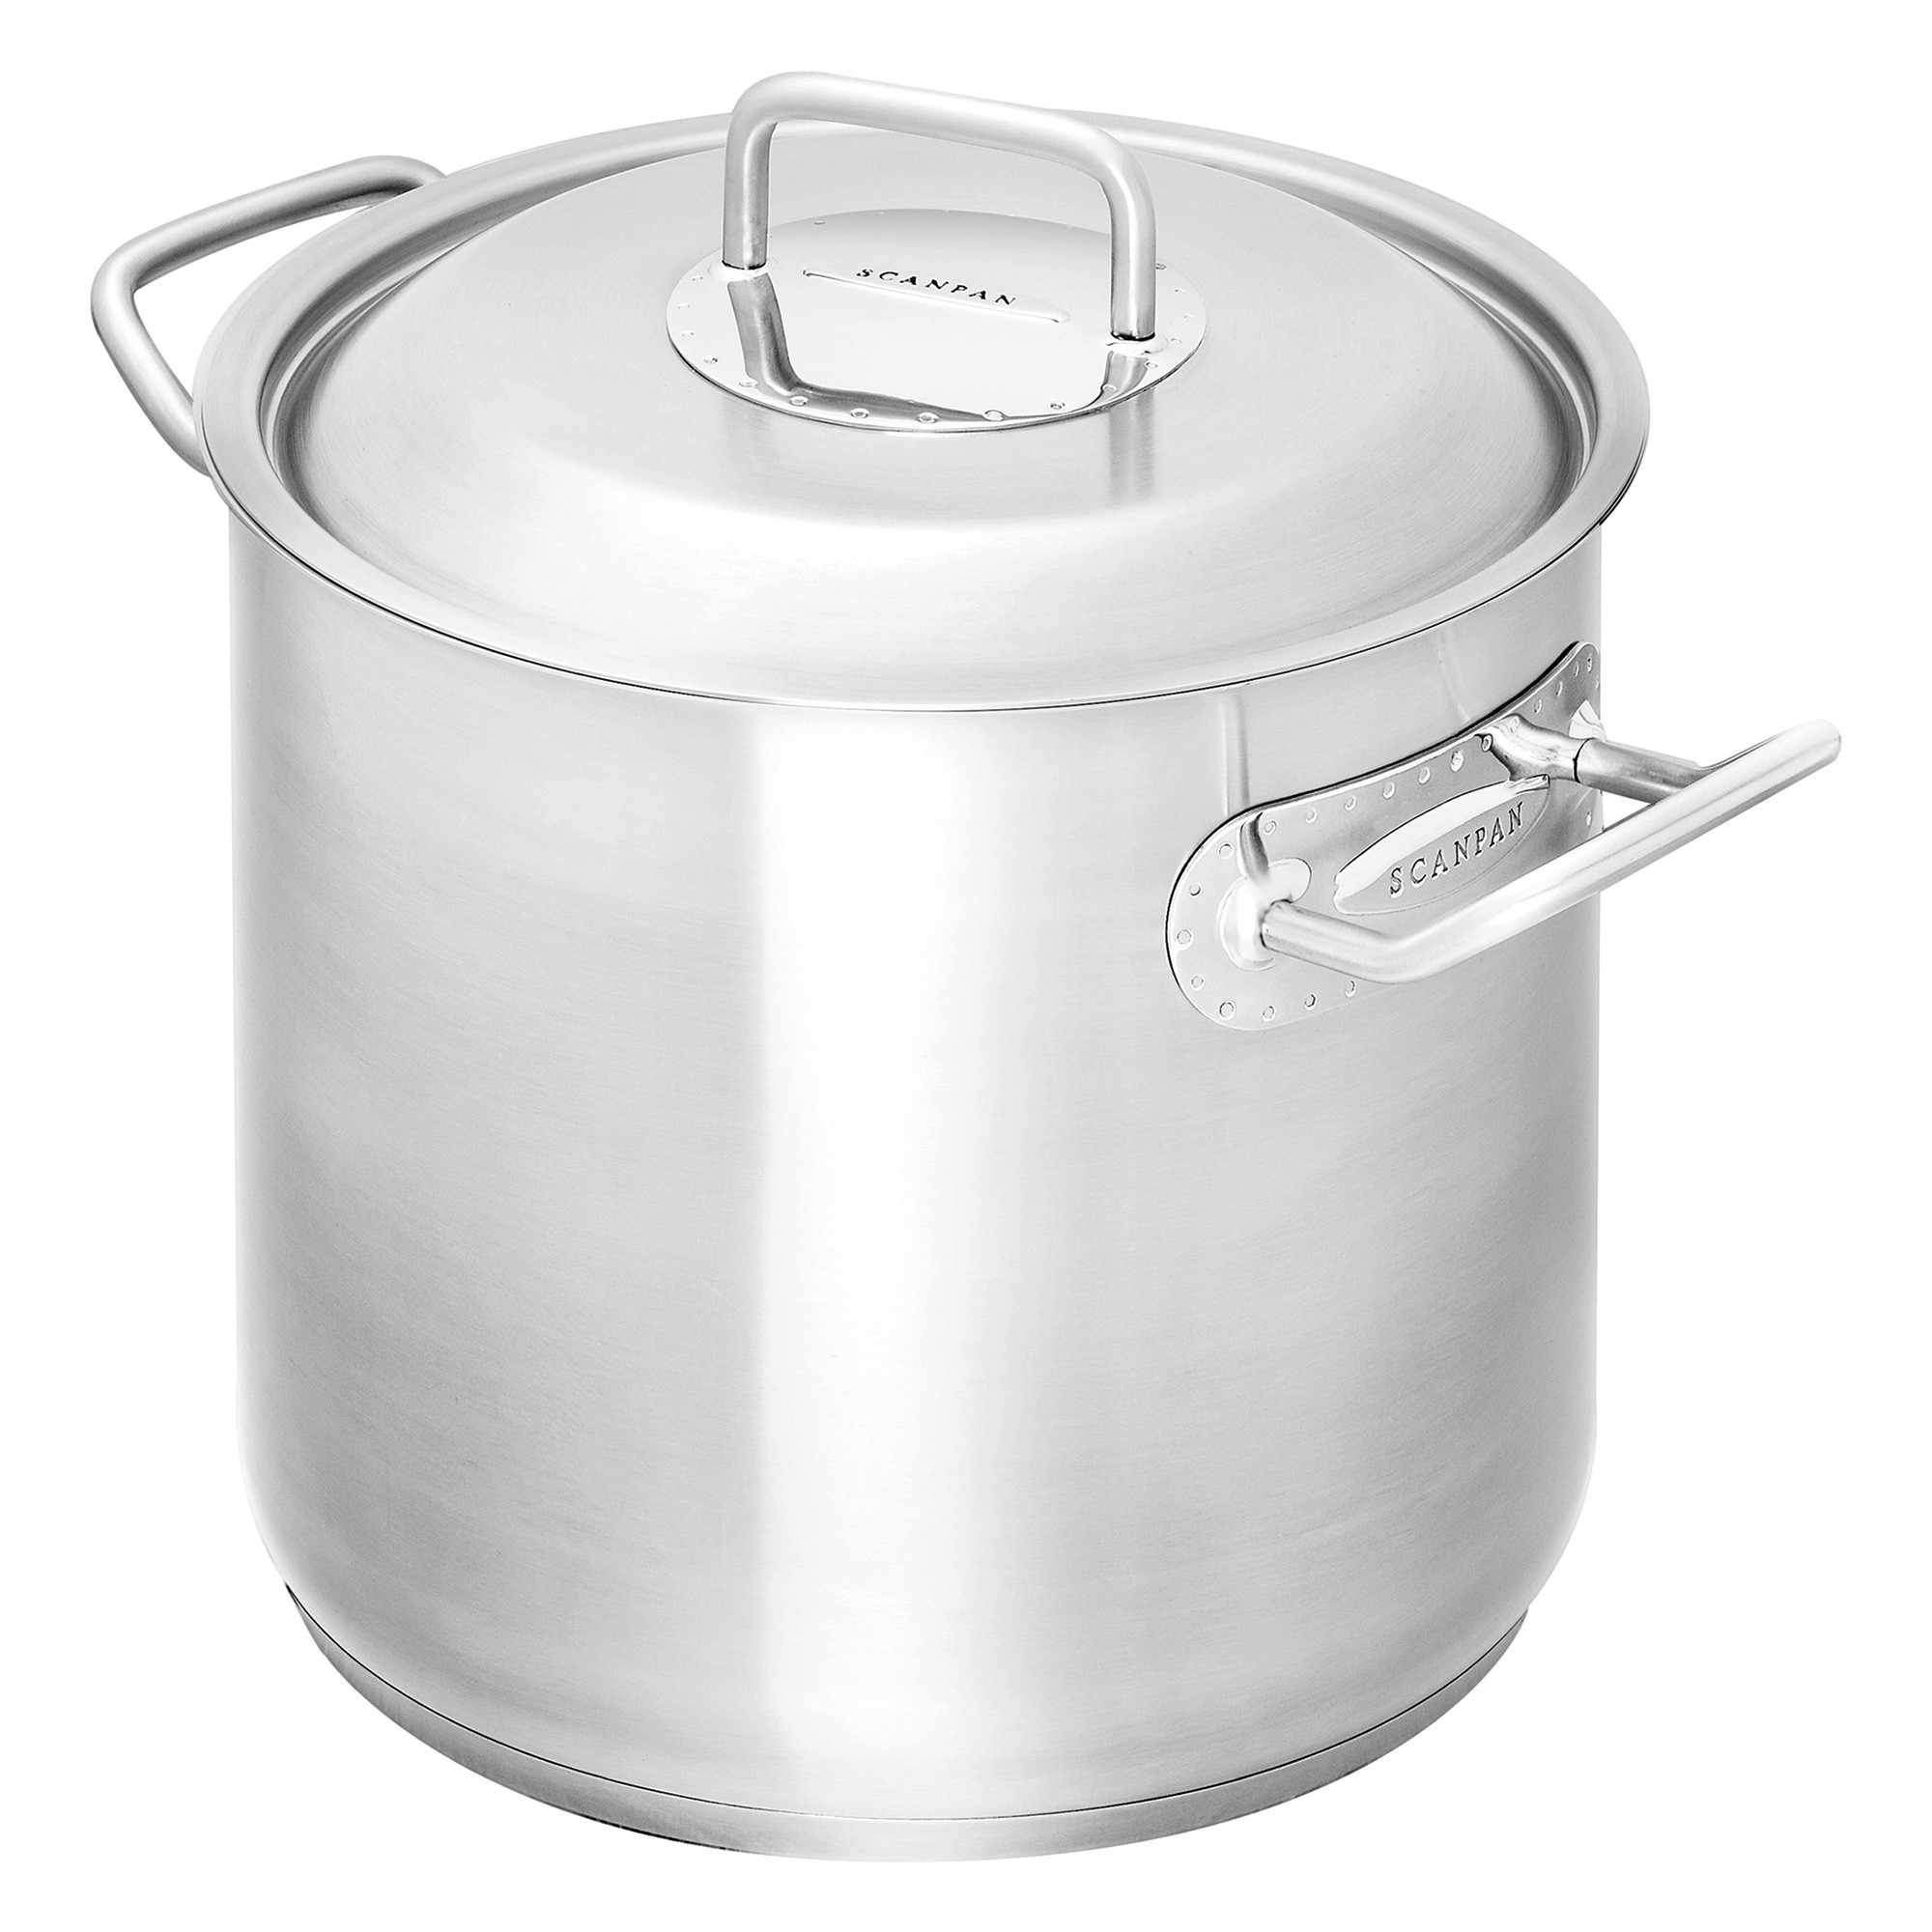 Scanpan Commercial 24cm/8.5L Stockpot with Lid